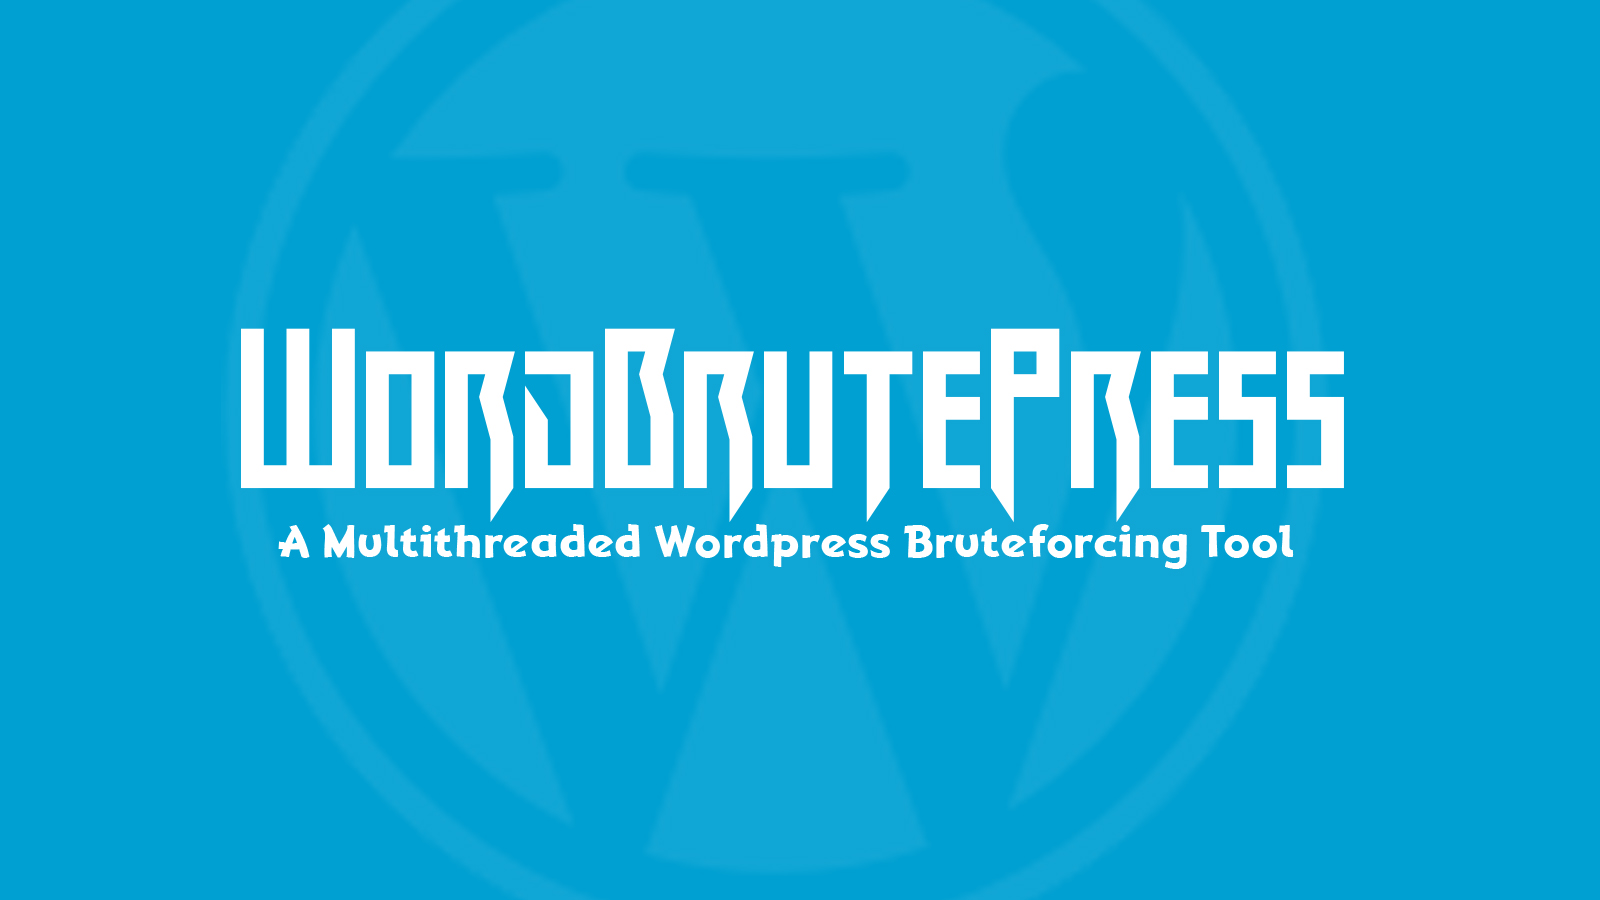 WordBrutePress - A Multithreaded Wordpress Bruteforcing Tool